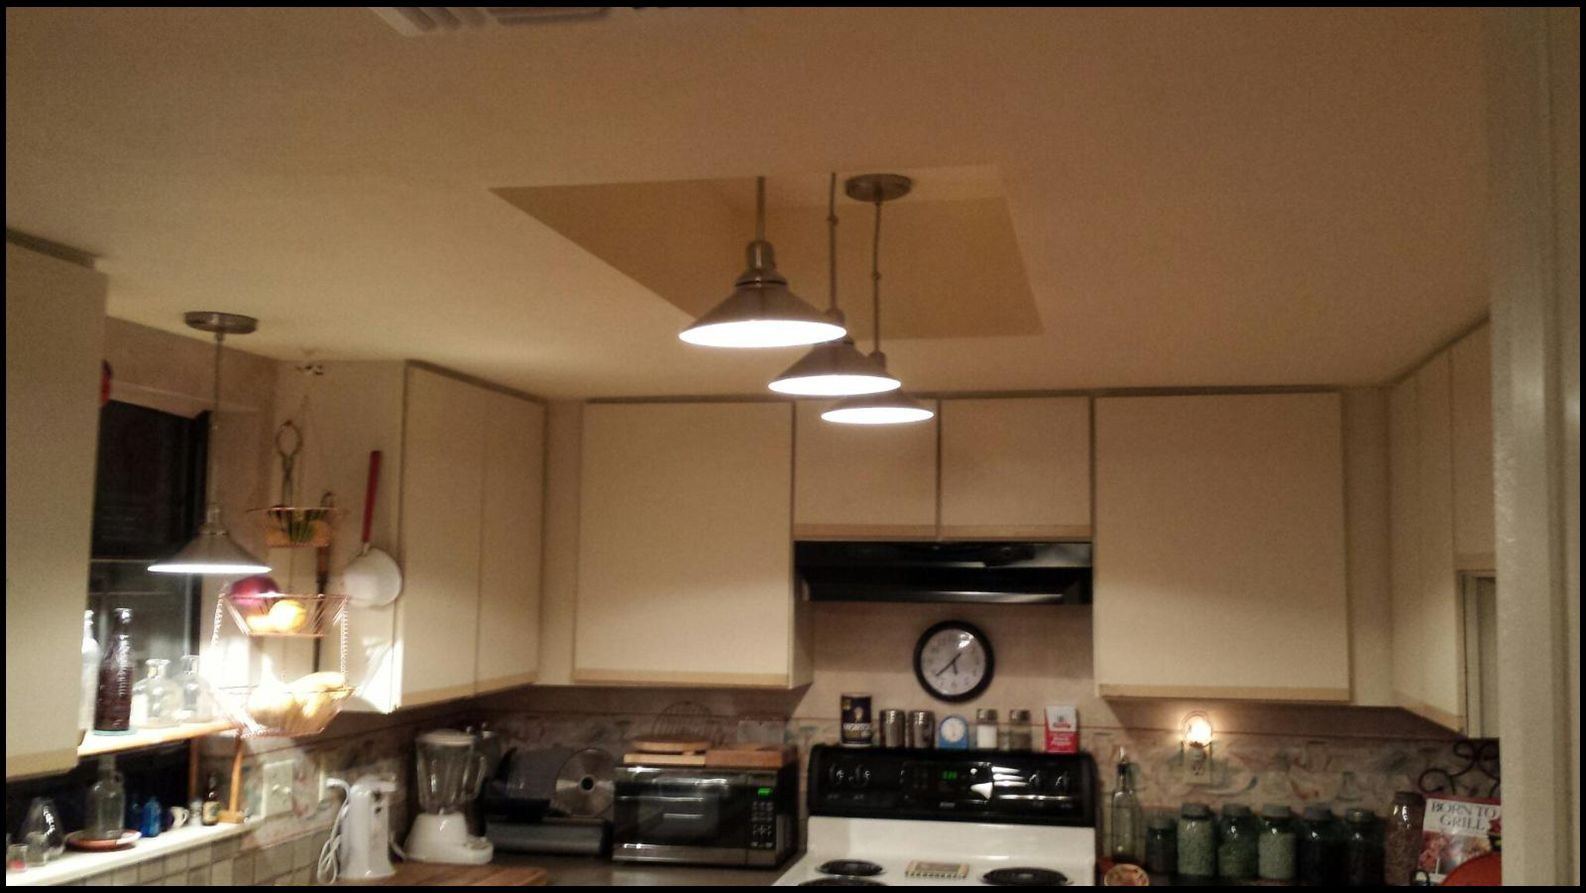 This Kitchen Not Only Did We Removed The Acoustic Ceiling But Sprayed  Orange Peel Texture And Painted The Ceiling. We Also Removed The Florescent  Fixture ...